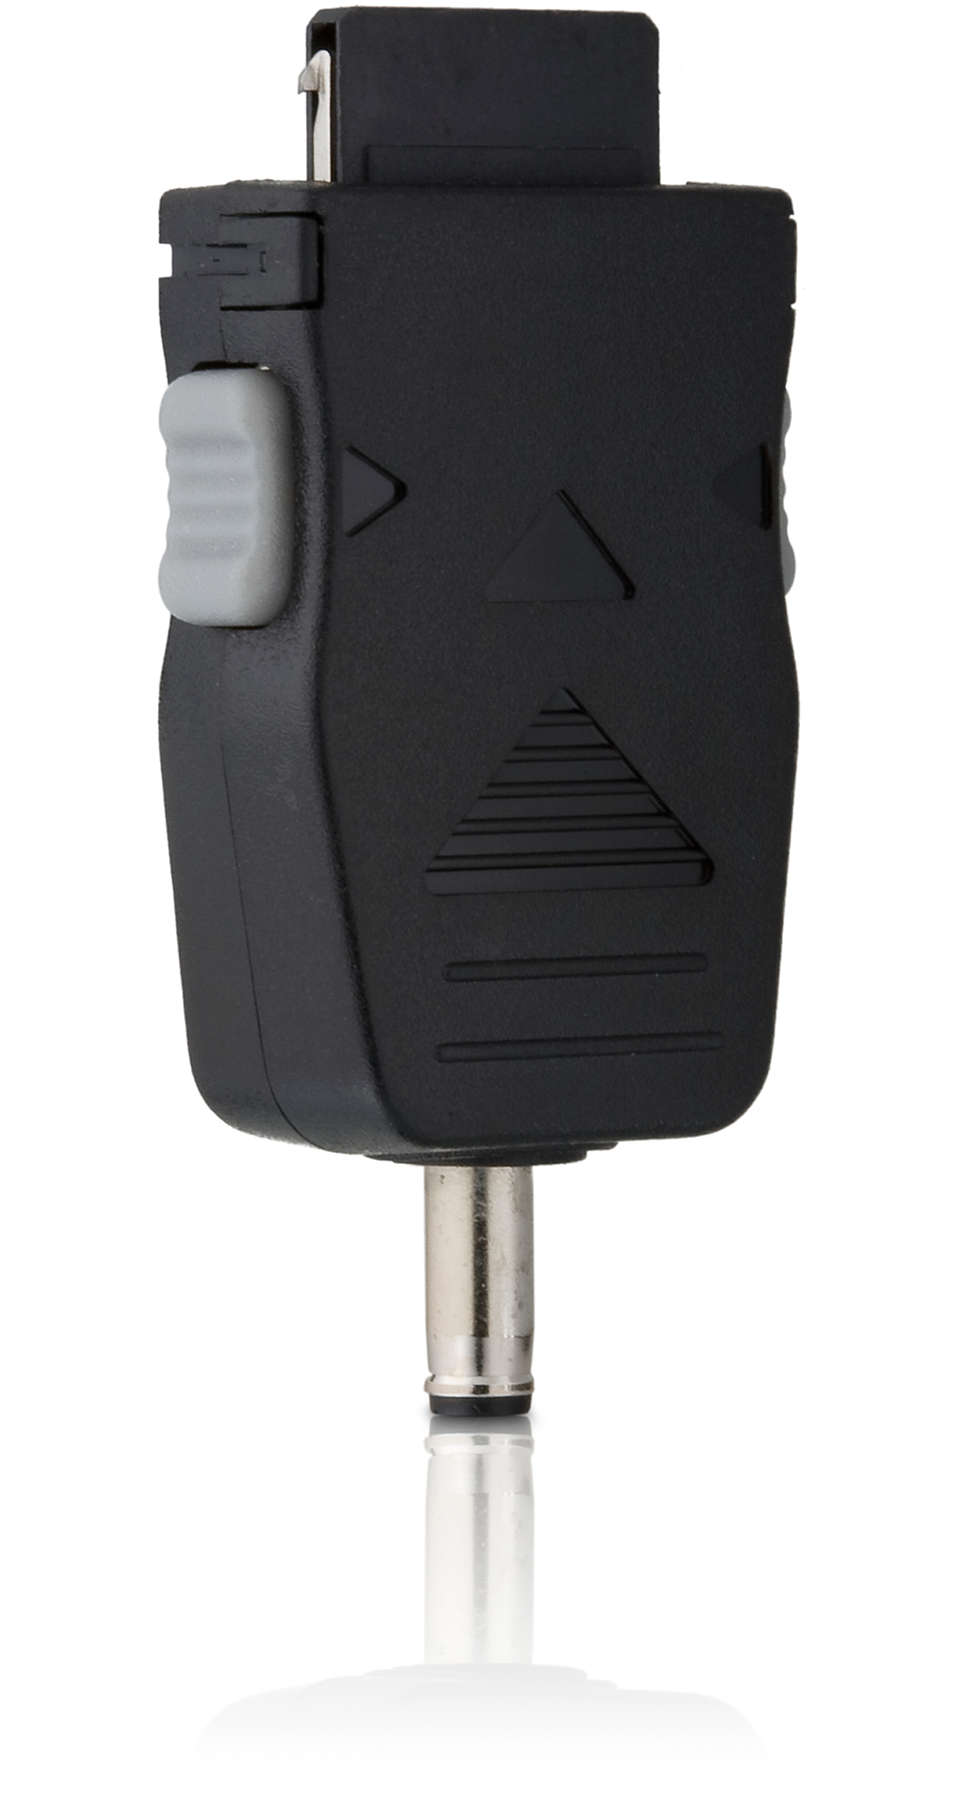 Connector tip for Samsung phones (a)